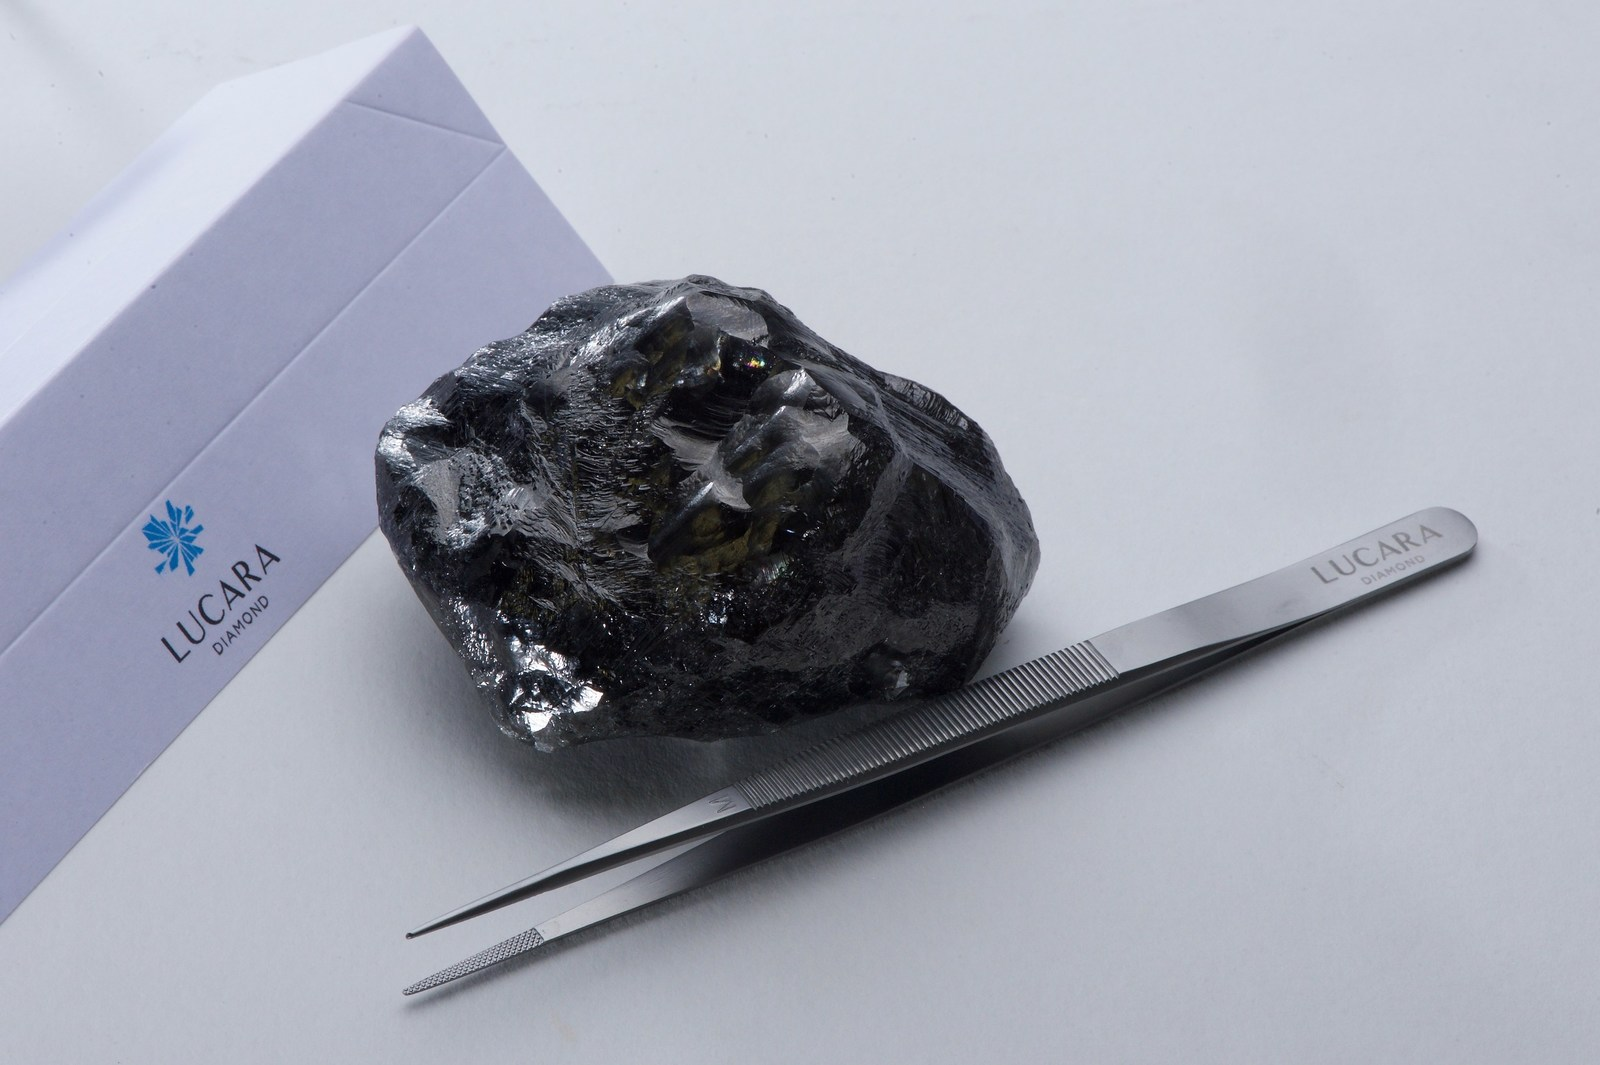 The 1,758 carat diamond recovered from the Karowe mine.